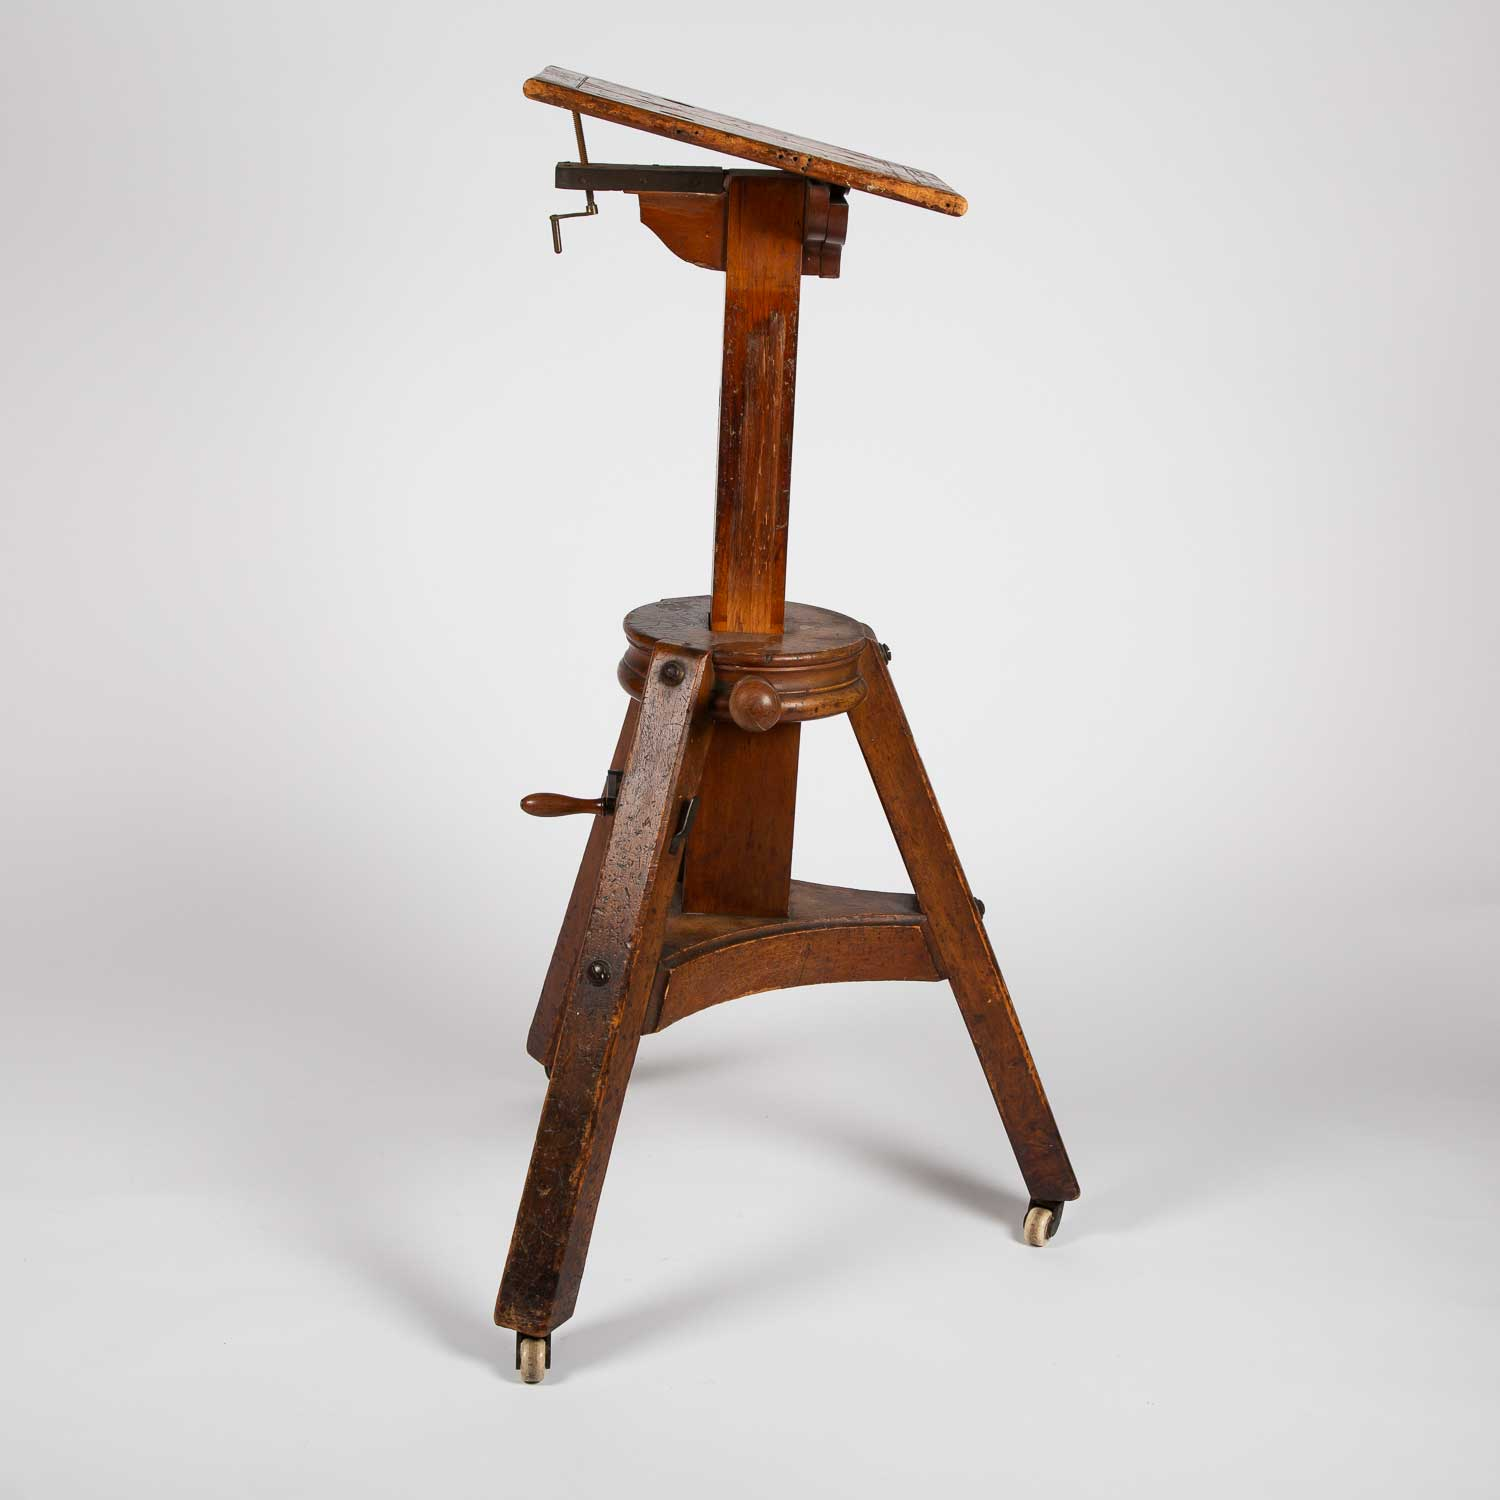 Camera tripod by Meagher of London